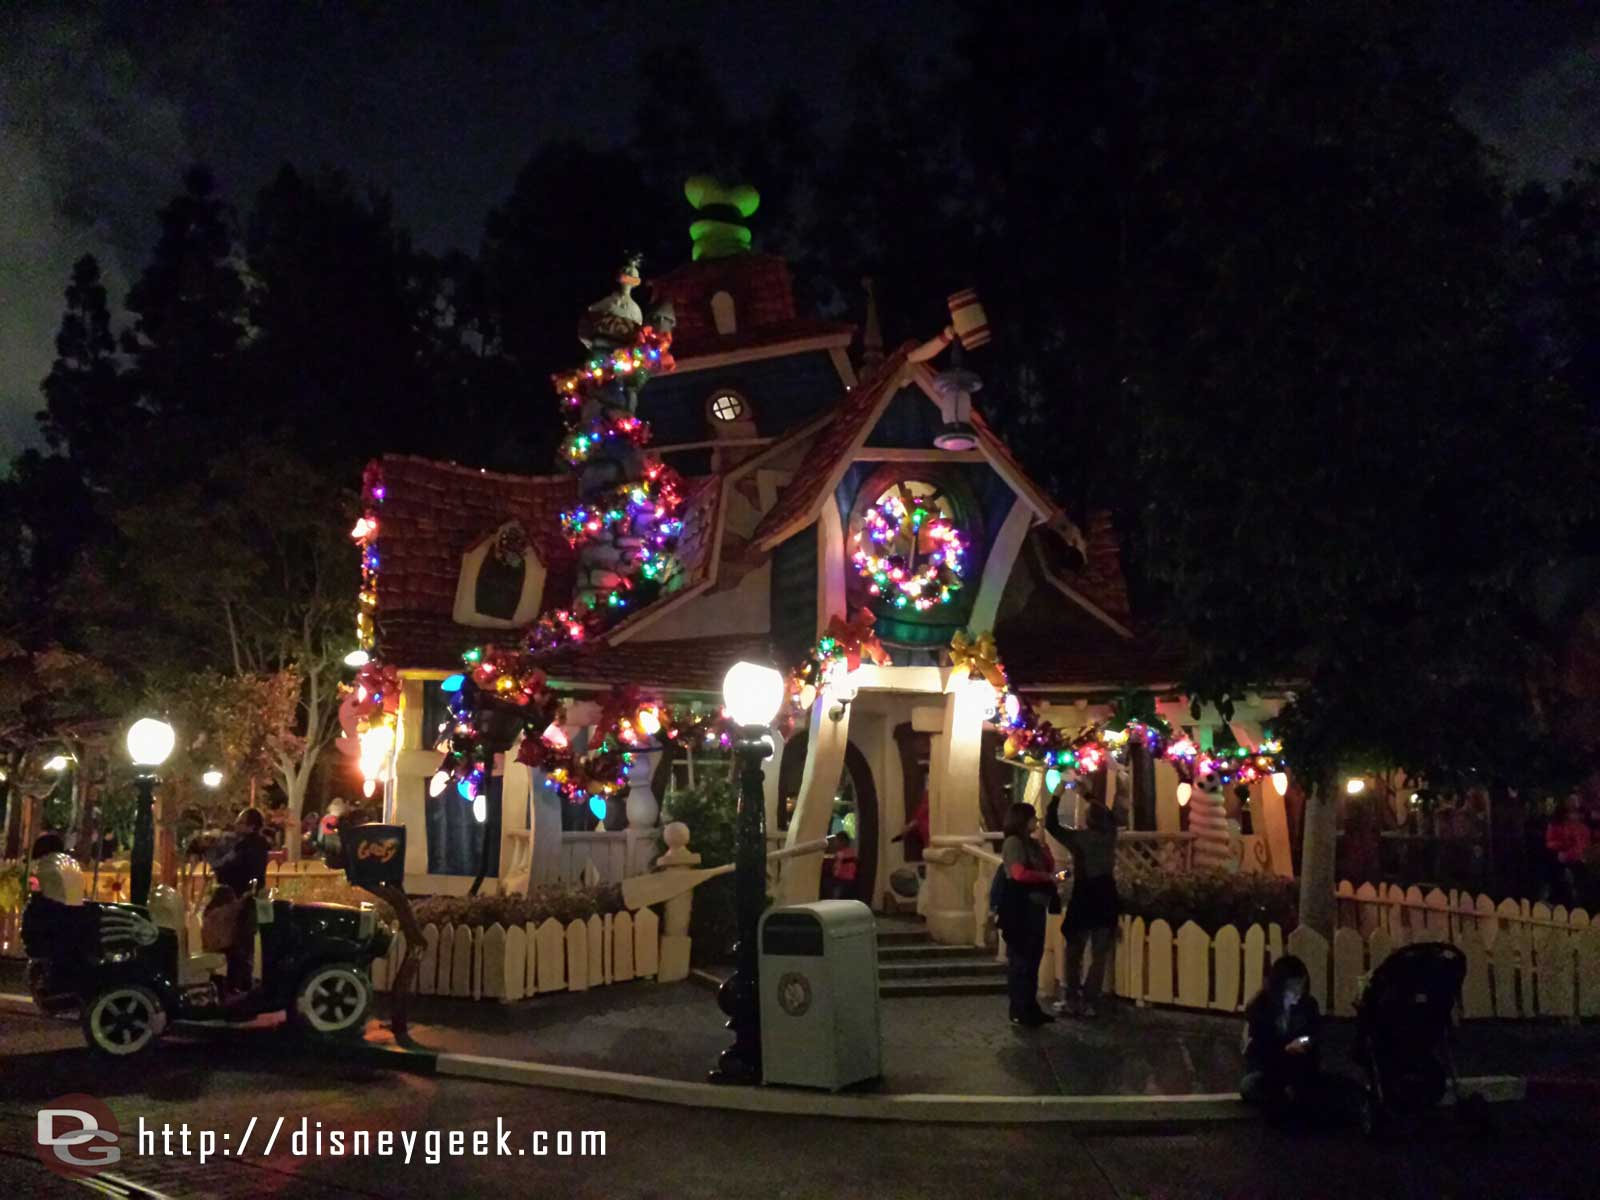 Goofy's House with Christmas lights #Disneyland #ToonTown